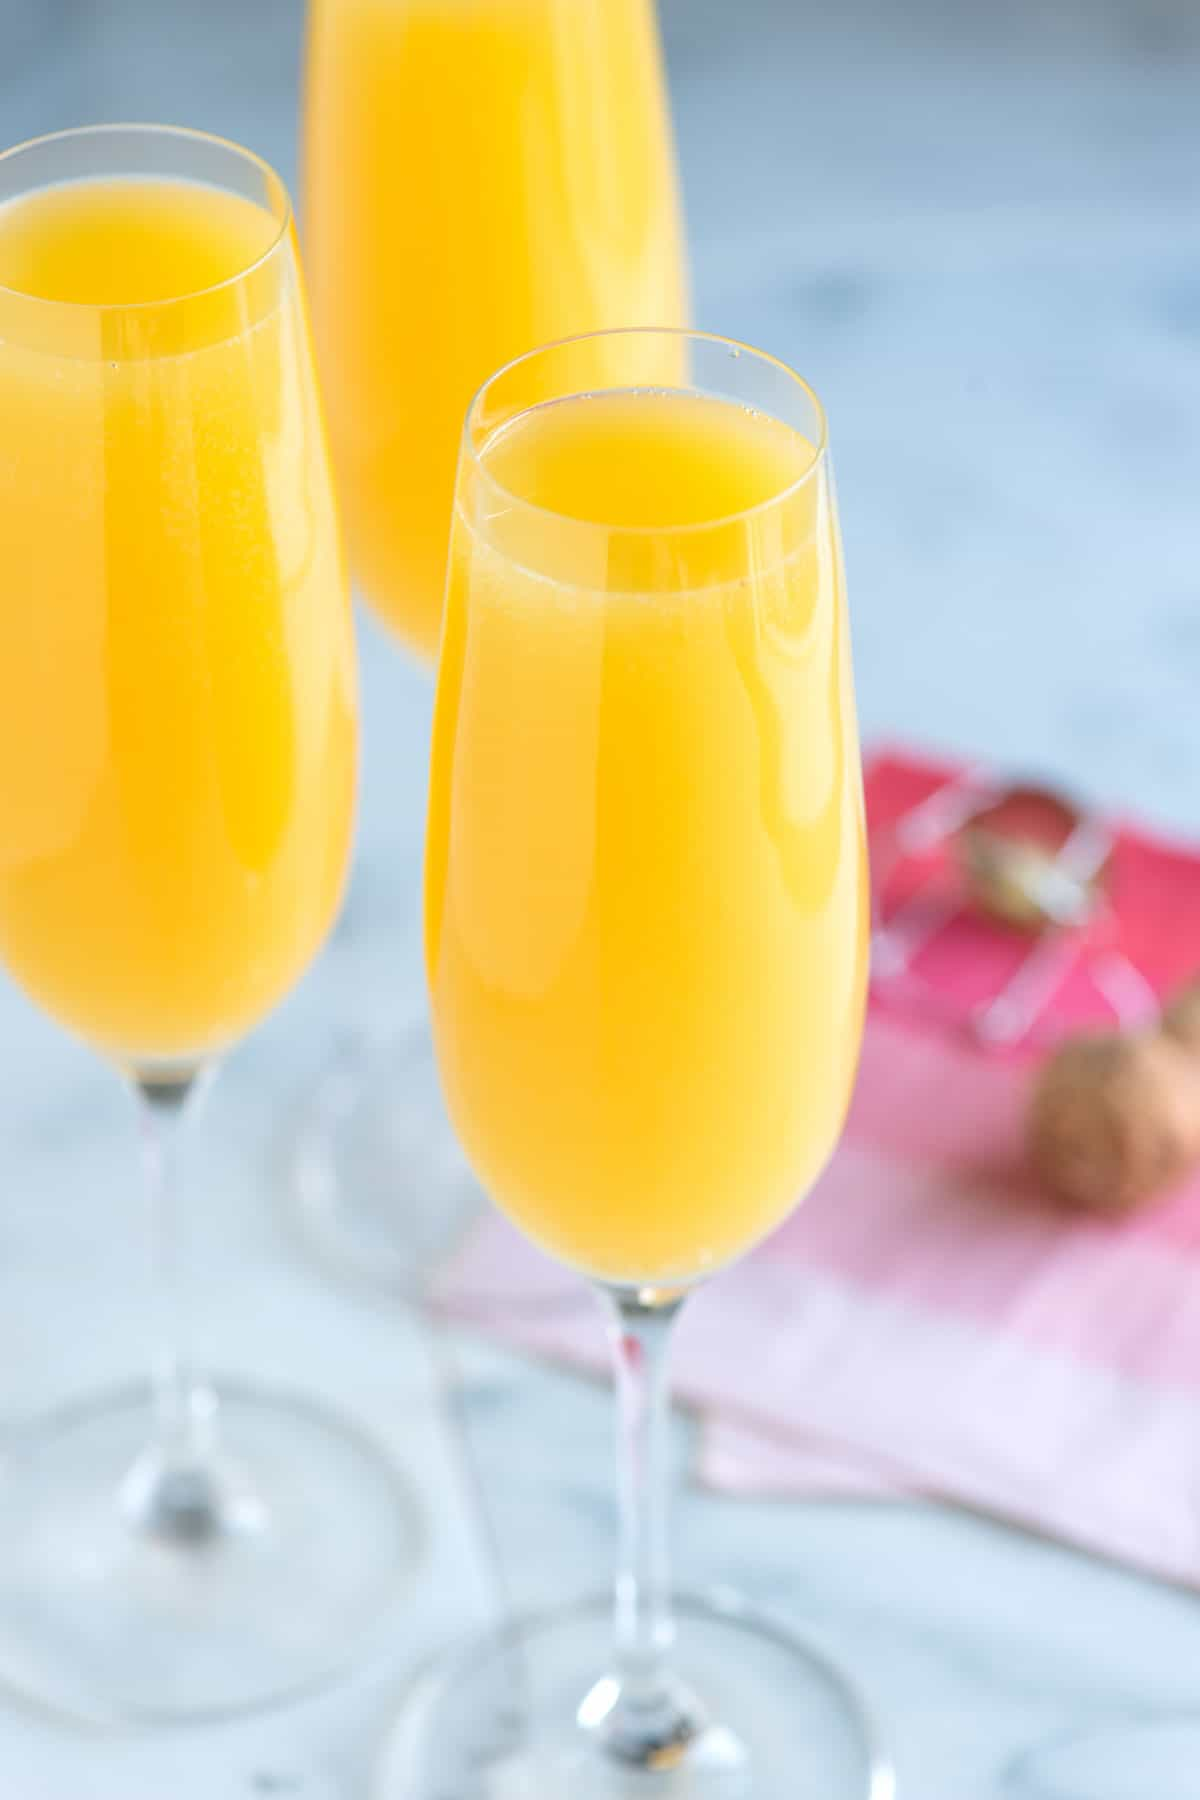 How to Make The Best Mimosa